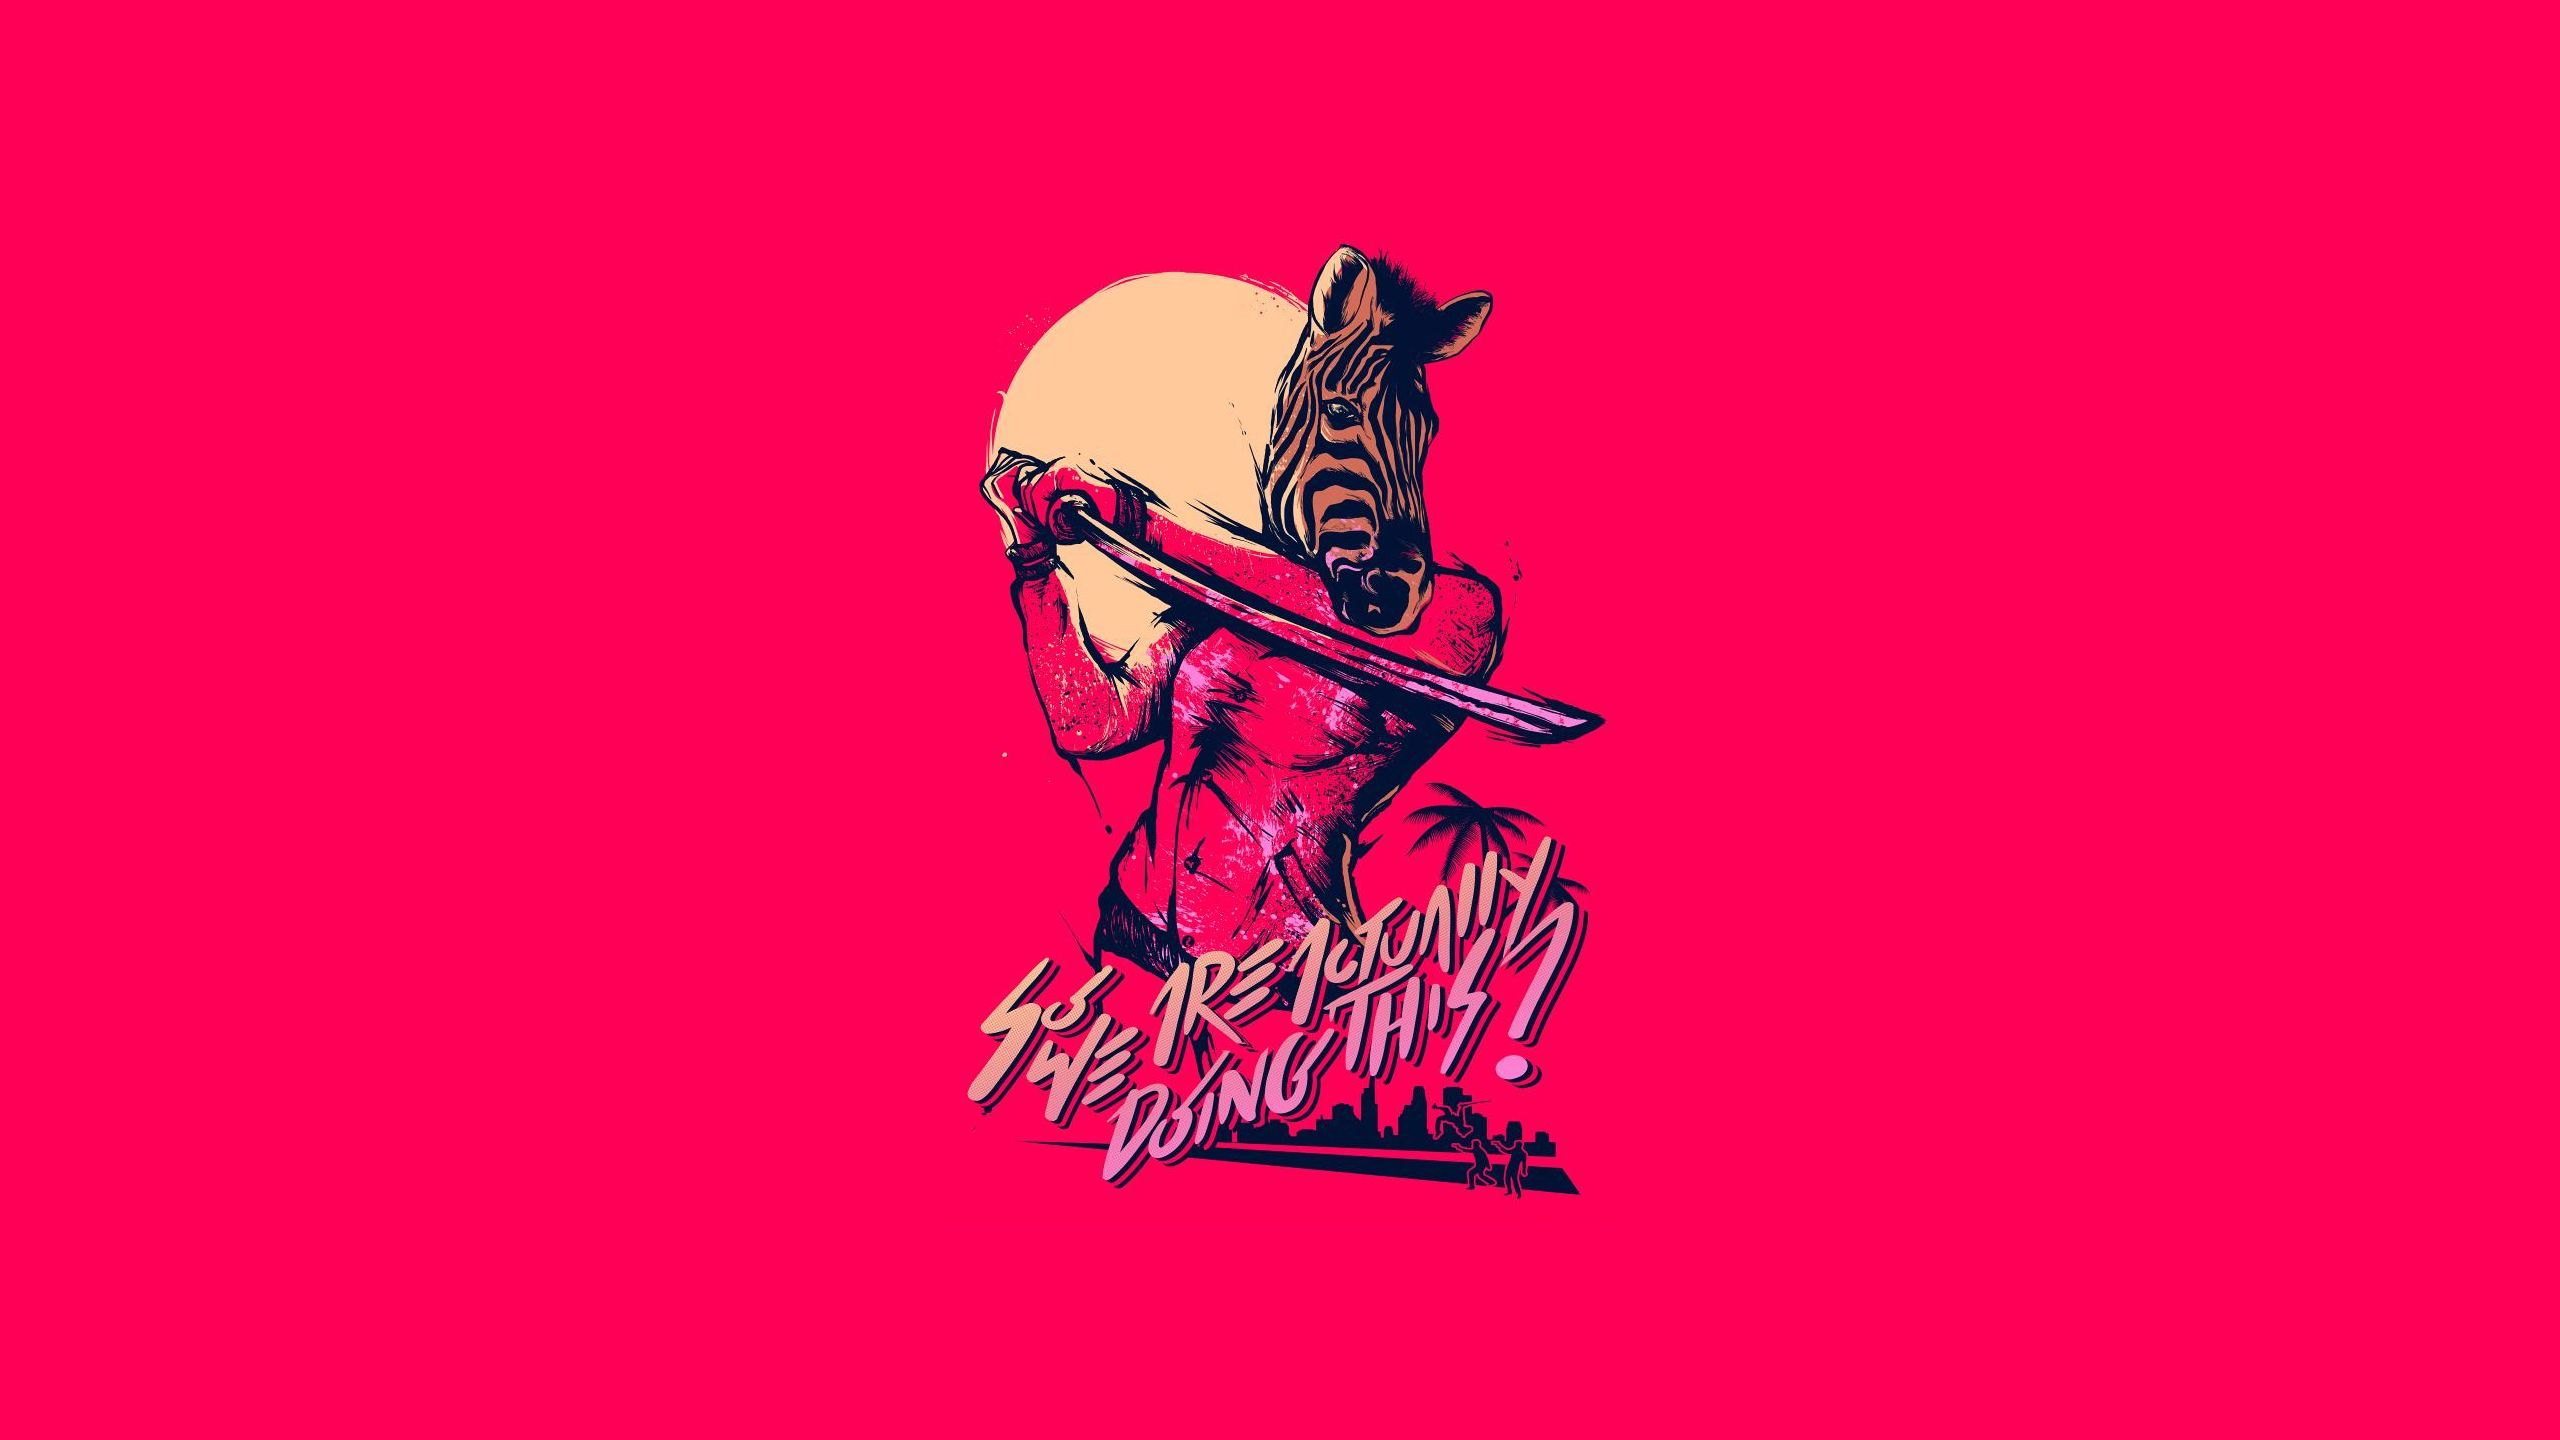 Hotline Miami Wallpapers Top Free Hotline Miami Backgrounds Wallpaperaccess